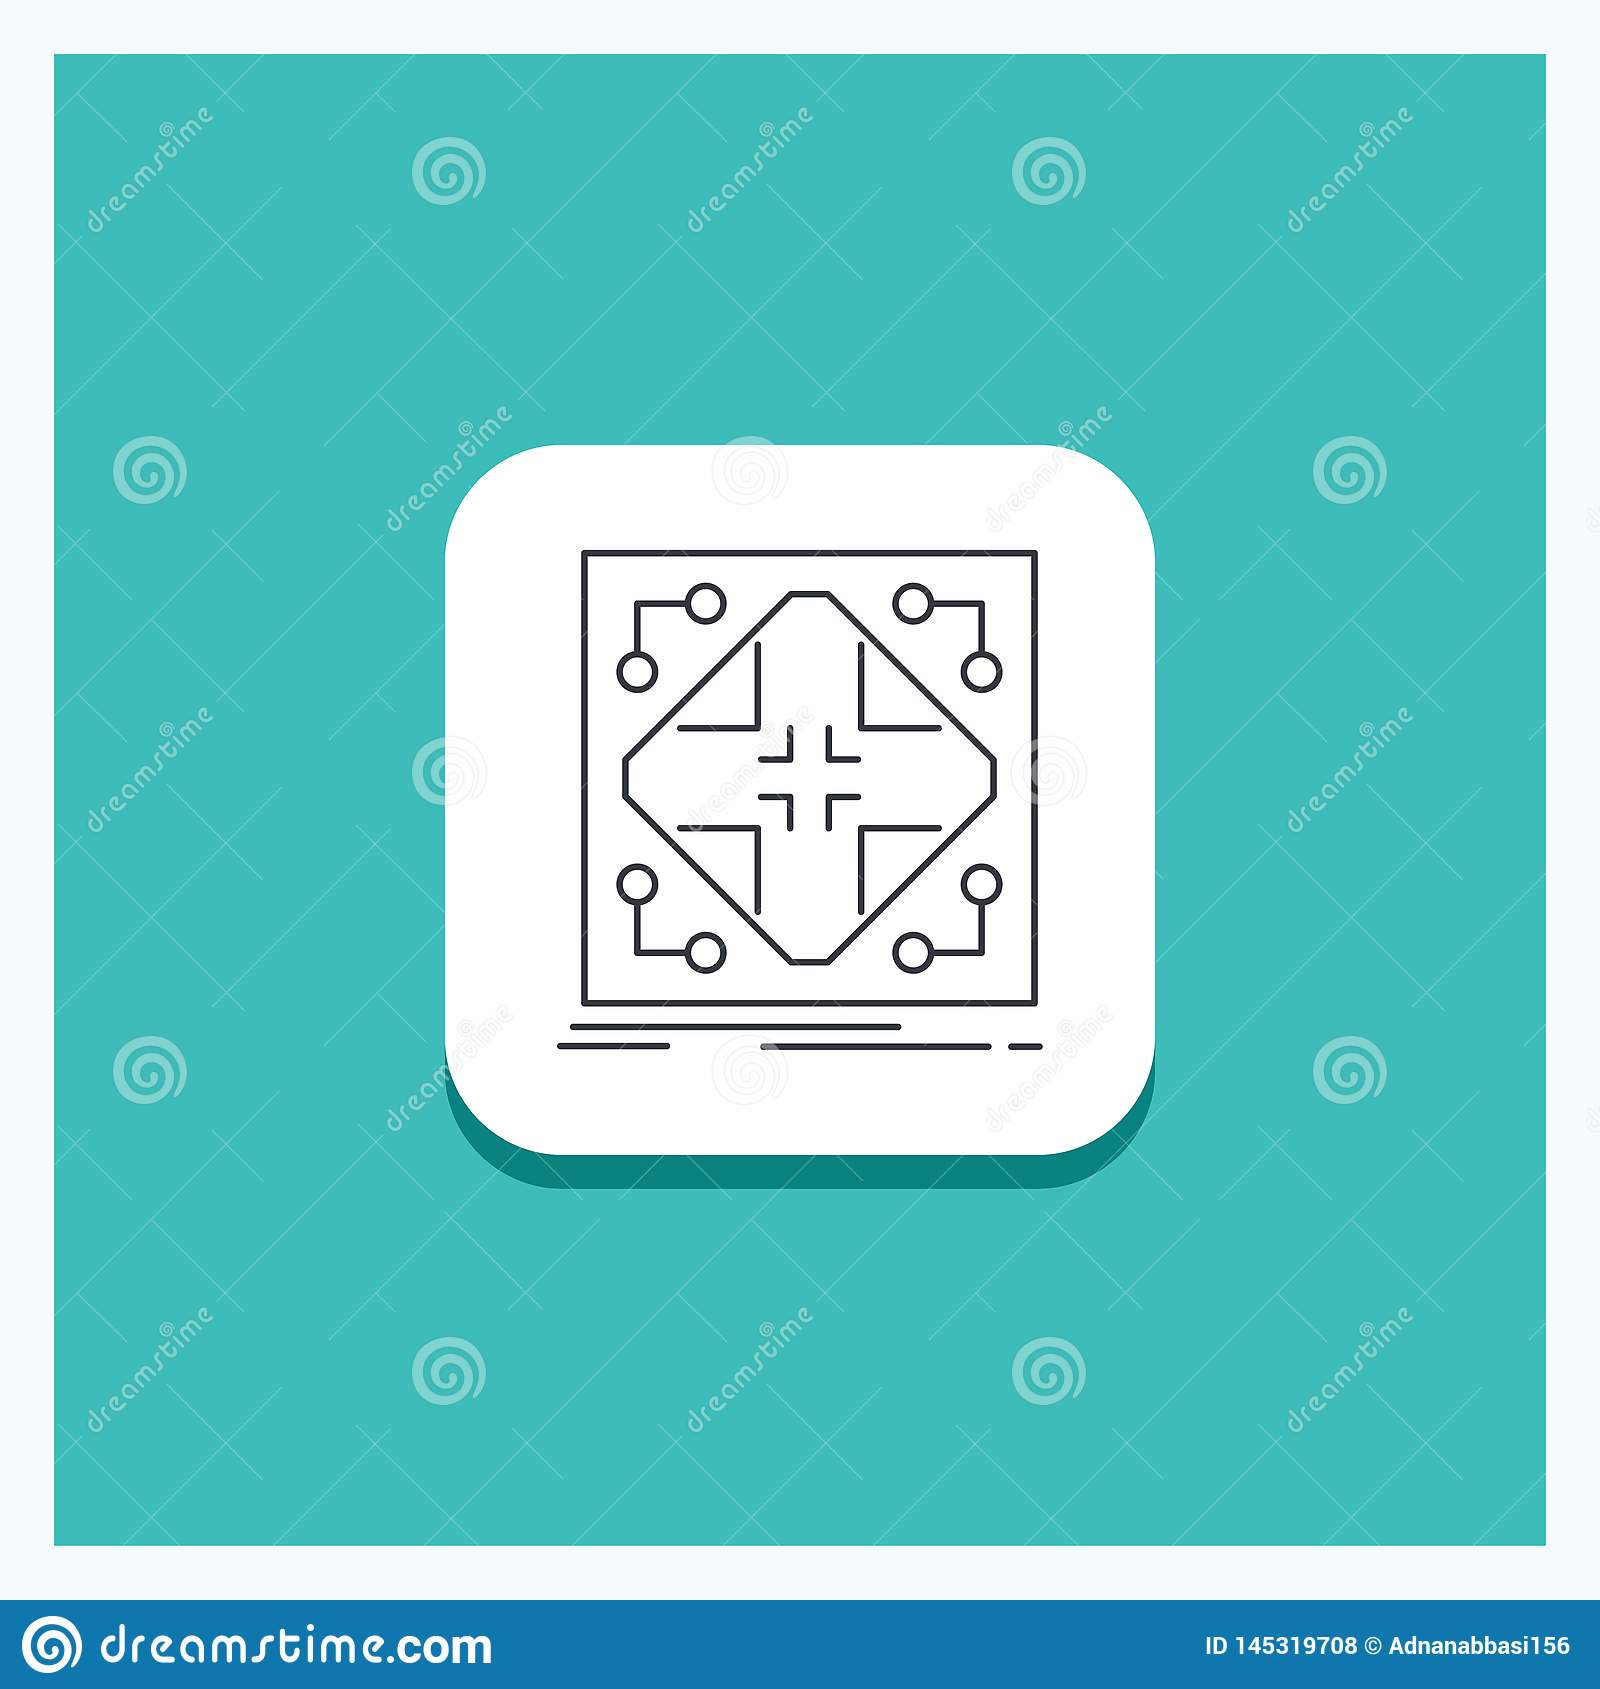 round button for data, infrastructure, network, matrix, grid line icon  turquoise background